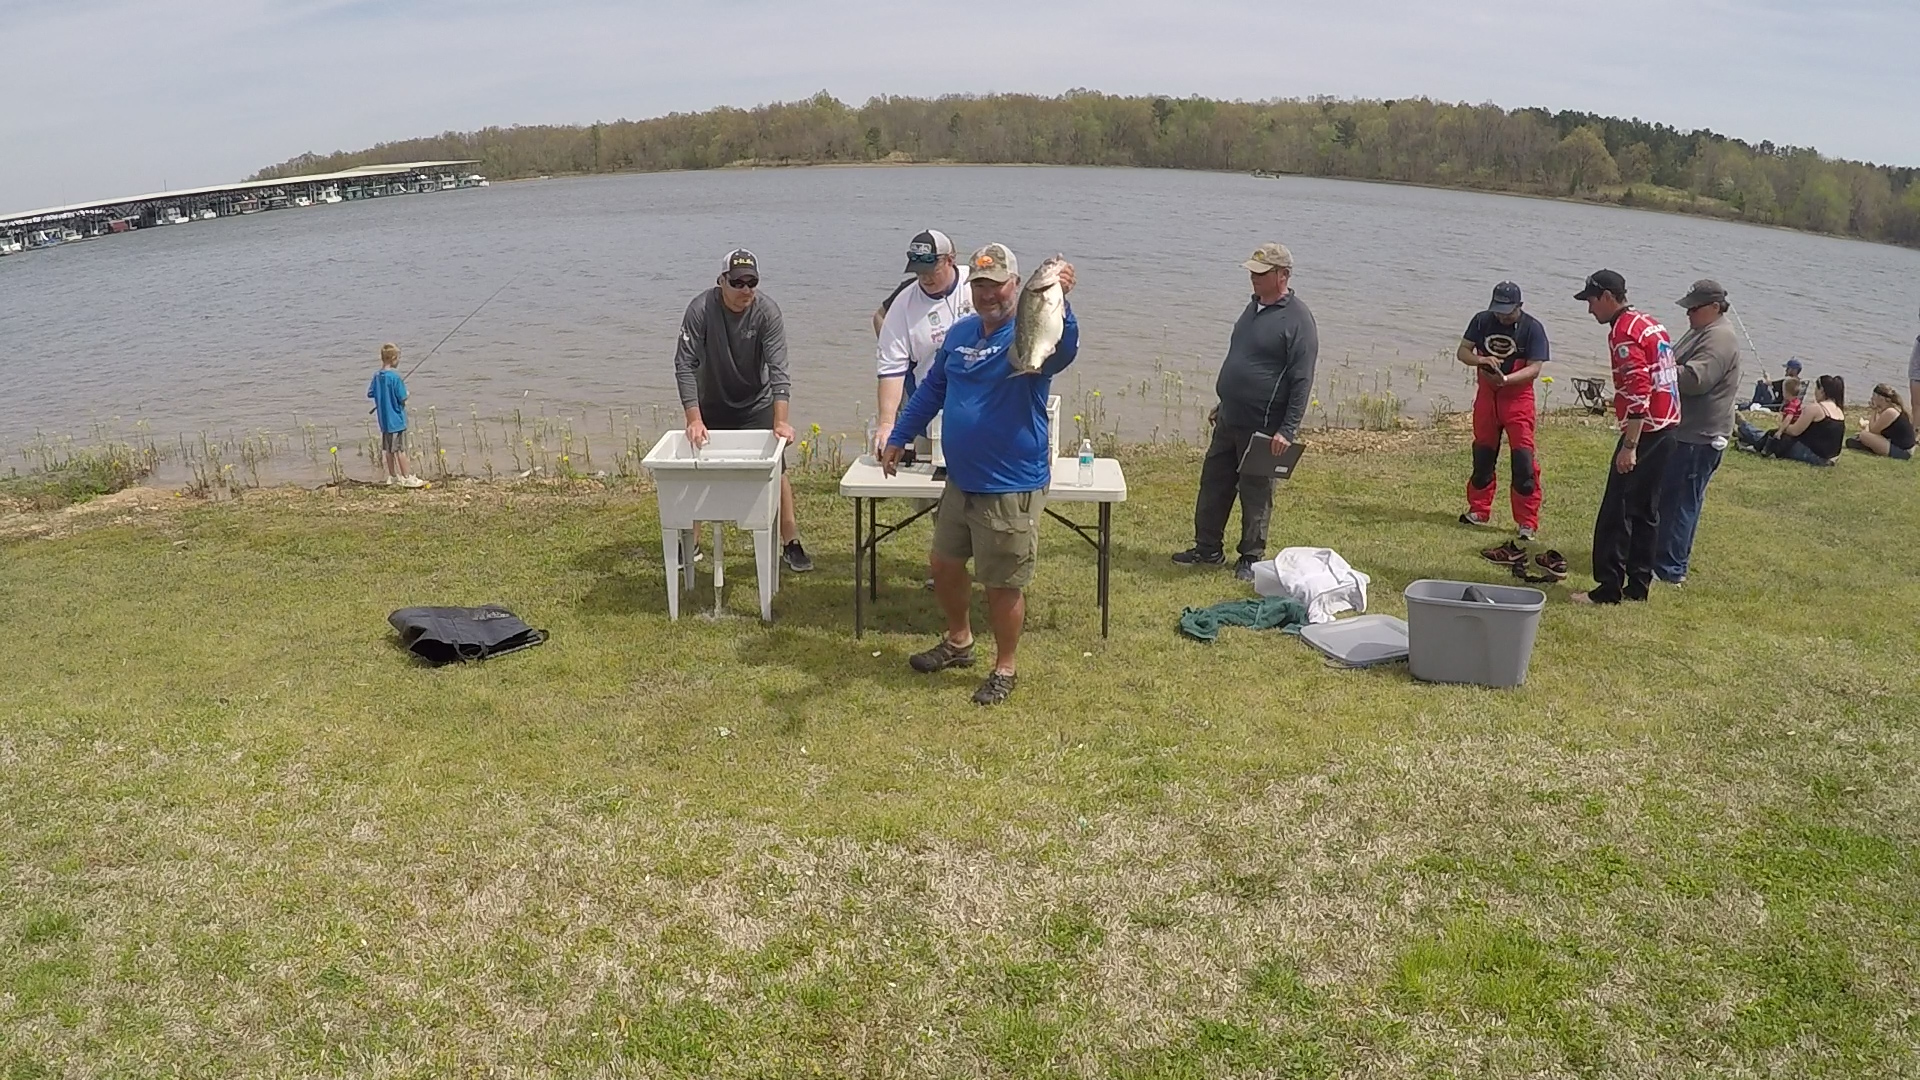 kentucky lake tournament35